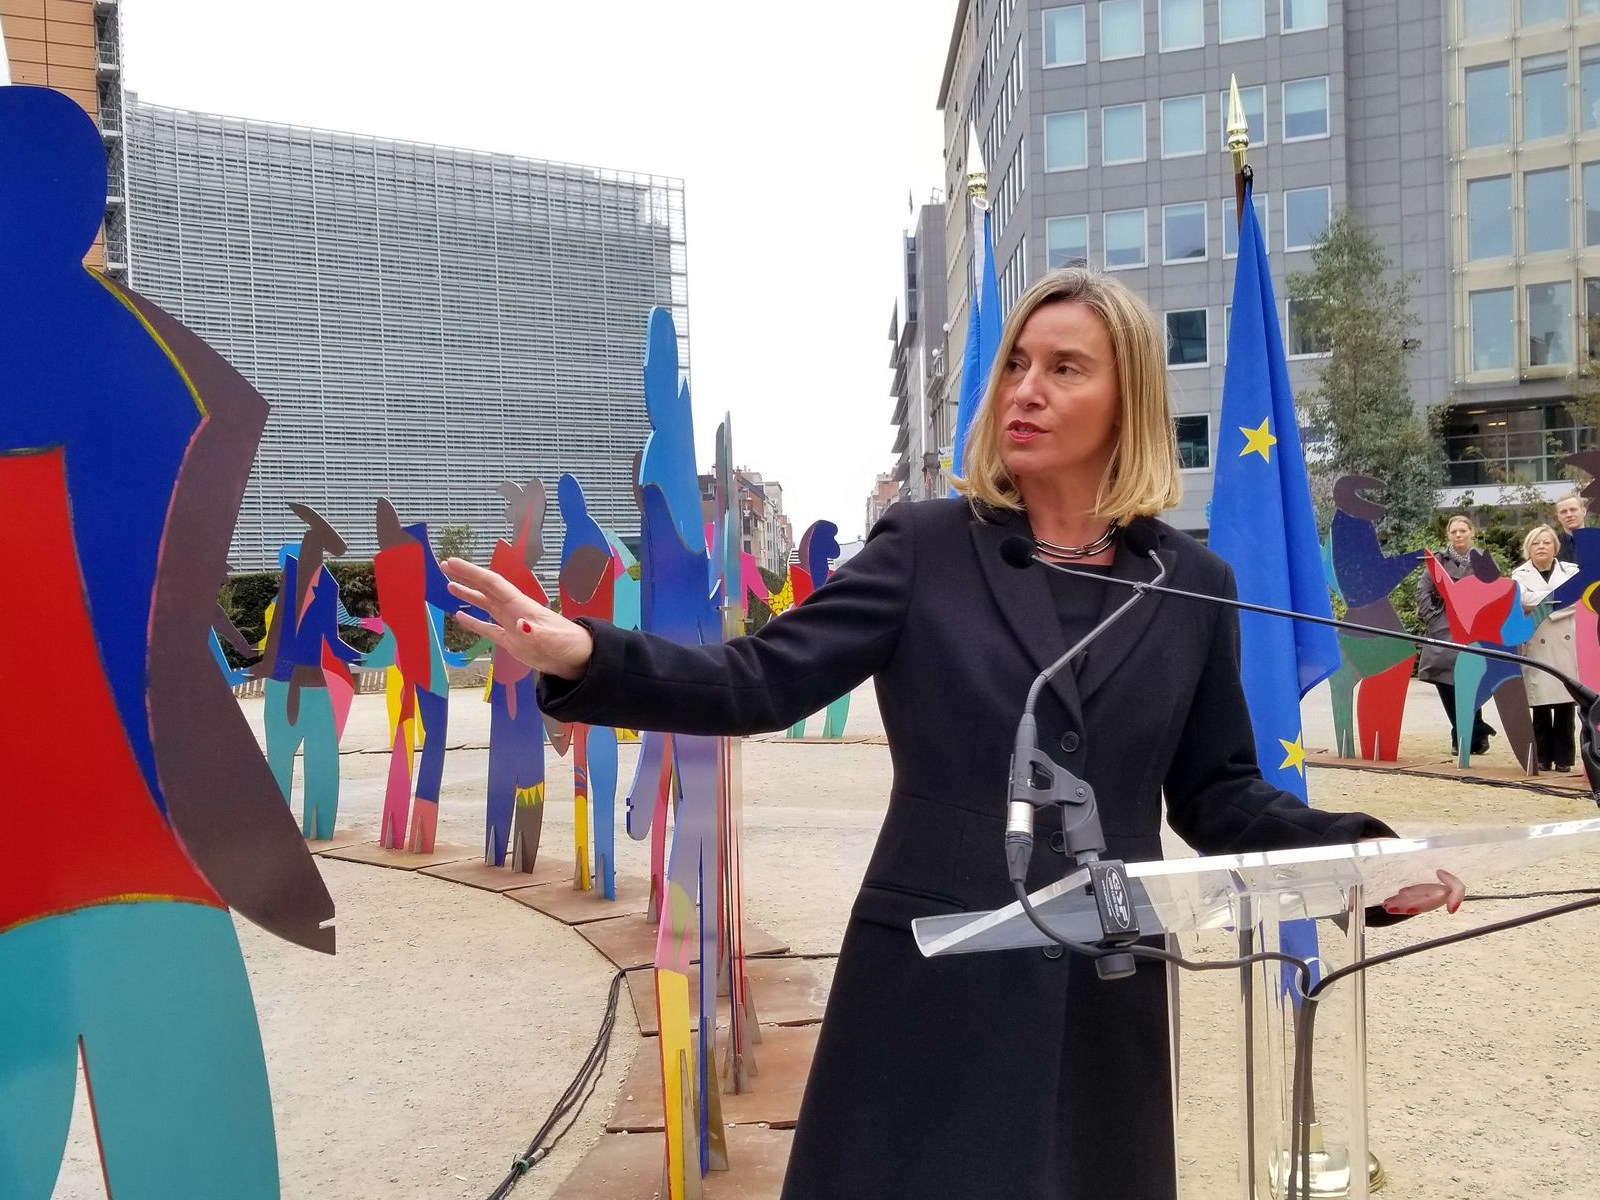 EU Policy Chief, Federica Mogherini